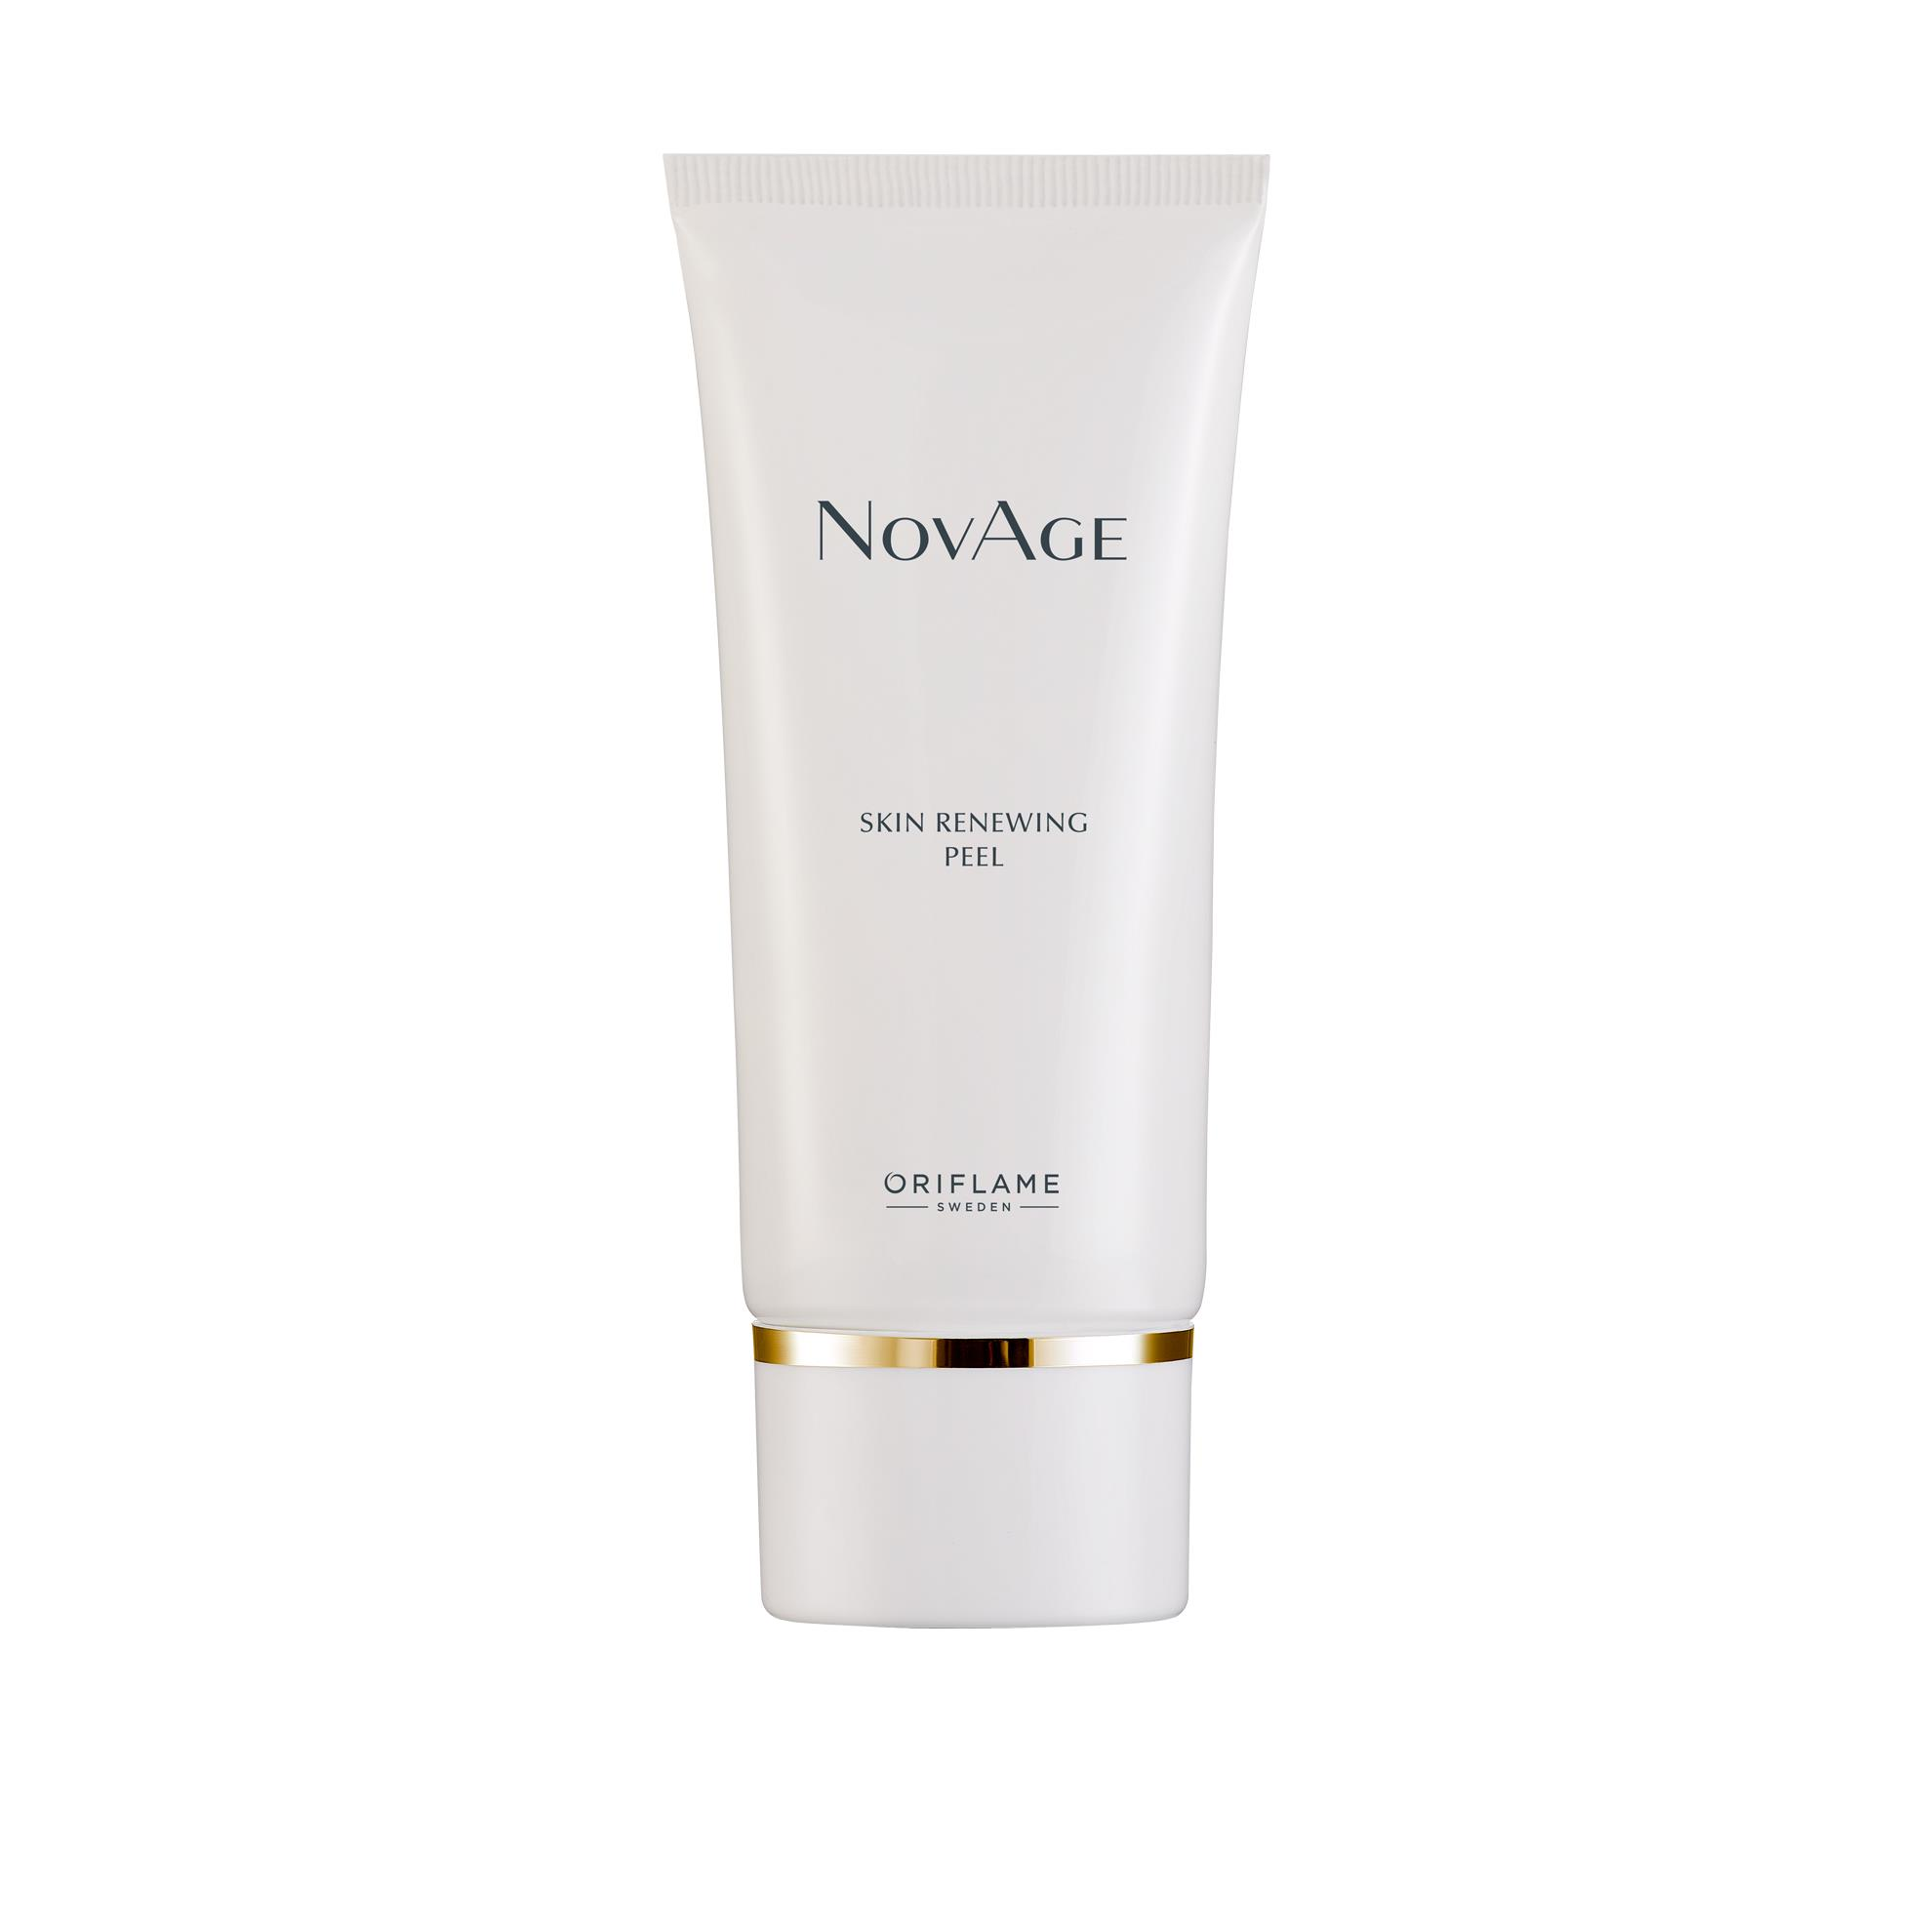 Novage Skin Renewing Peel Oriflame Cosmetics Sweden Uk Usa Shop Tenderly Miss Giordani Vivacity Perfumed Body Lotion Click To Enlarge